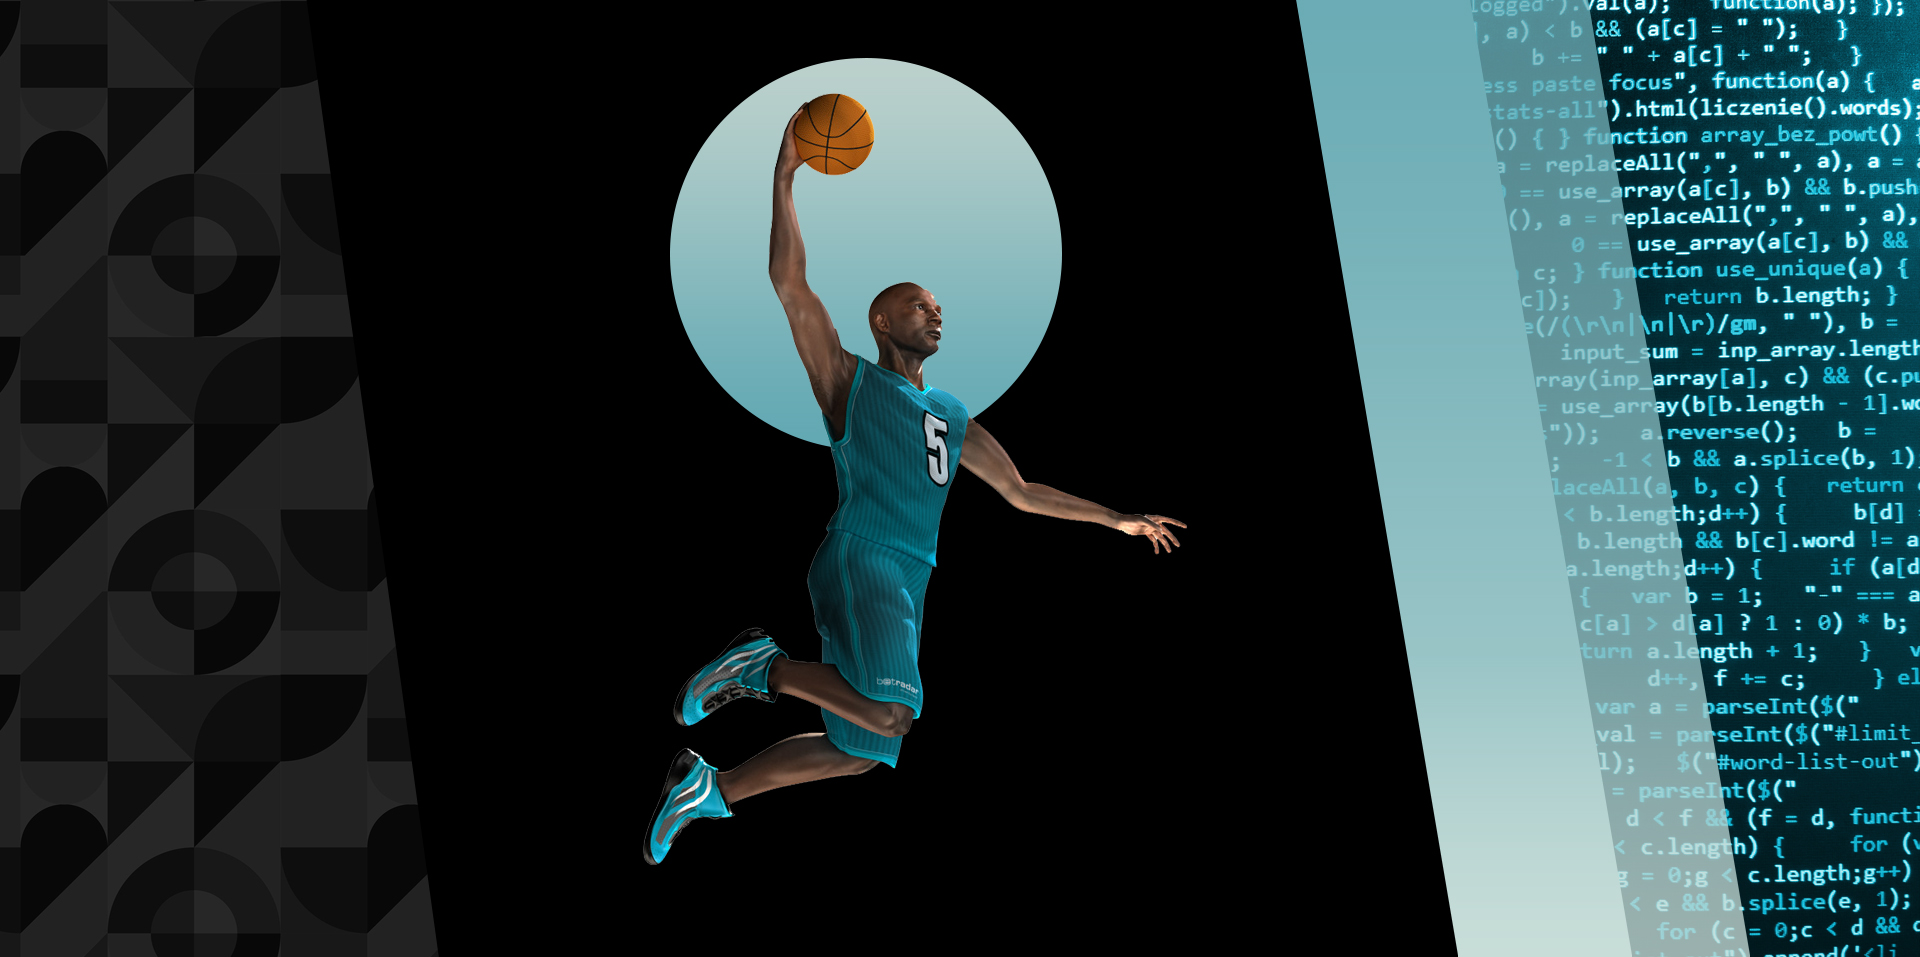 Virtual Basketball Software — What We Know